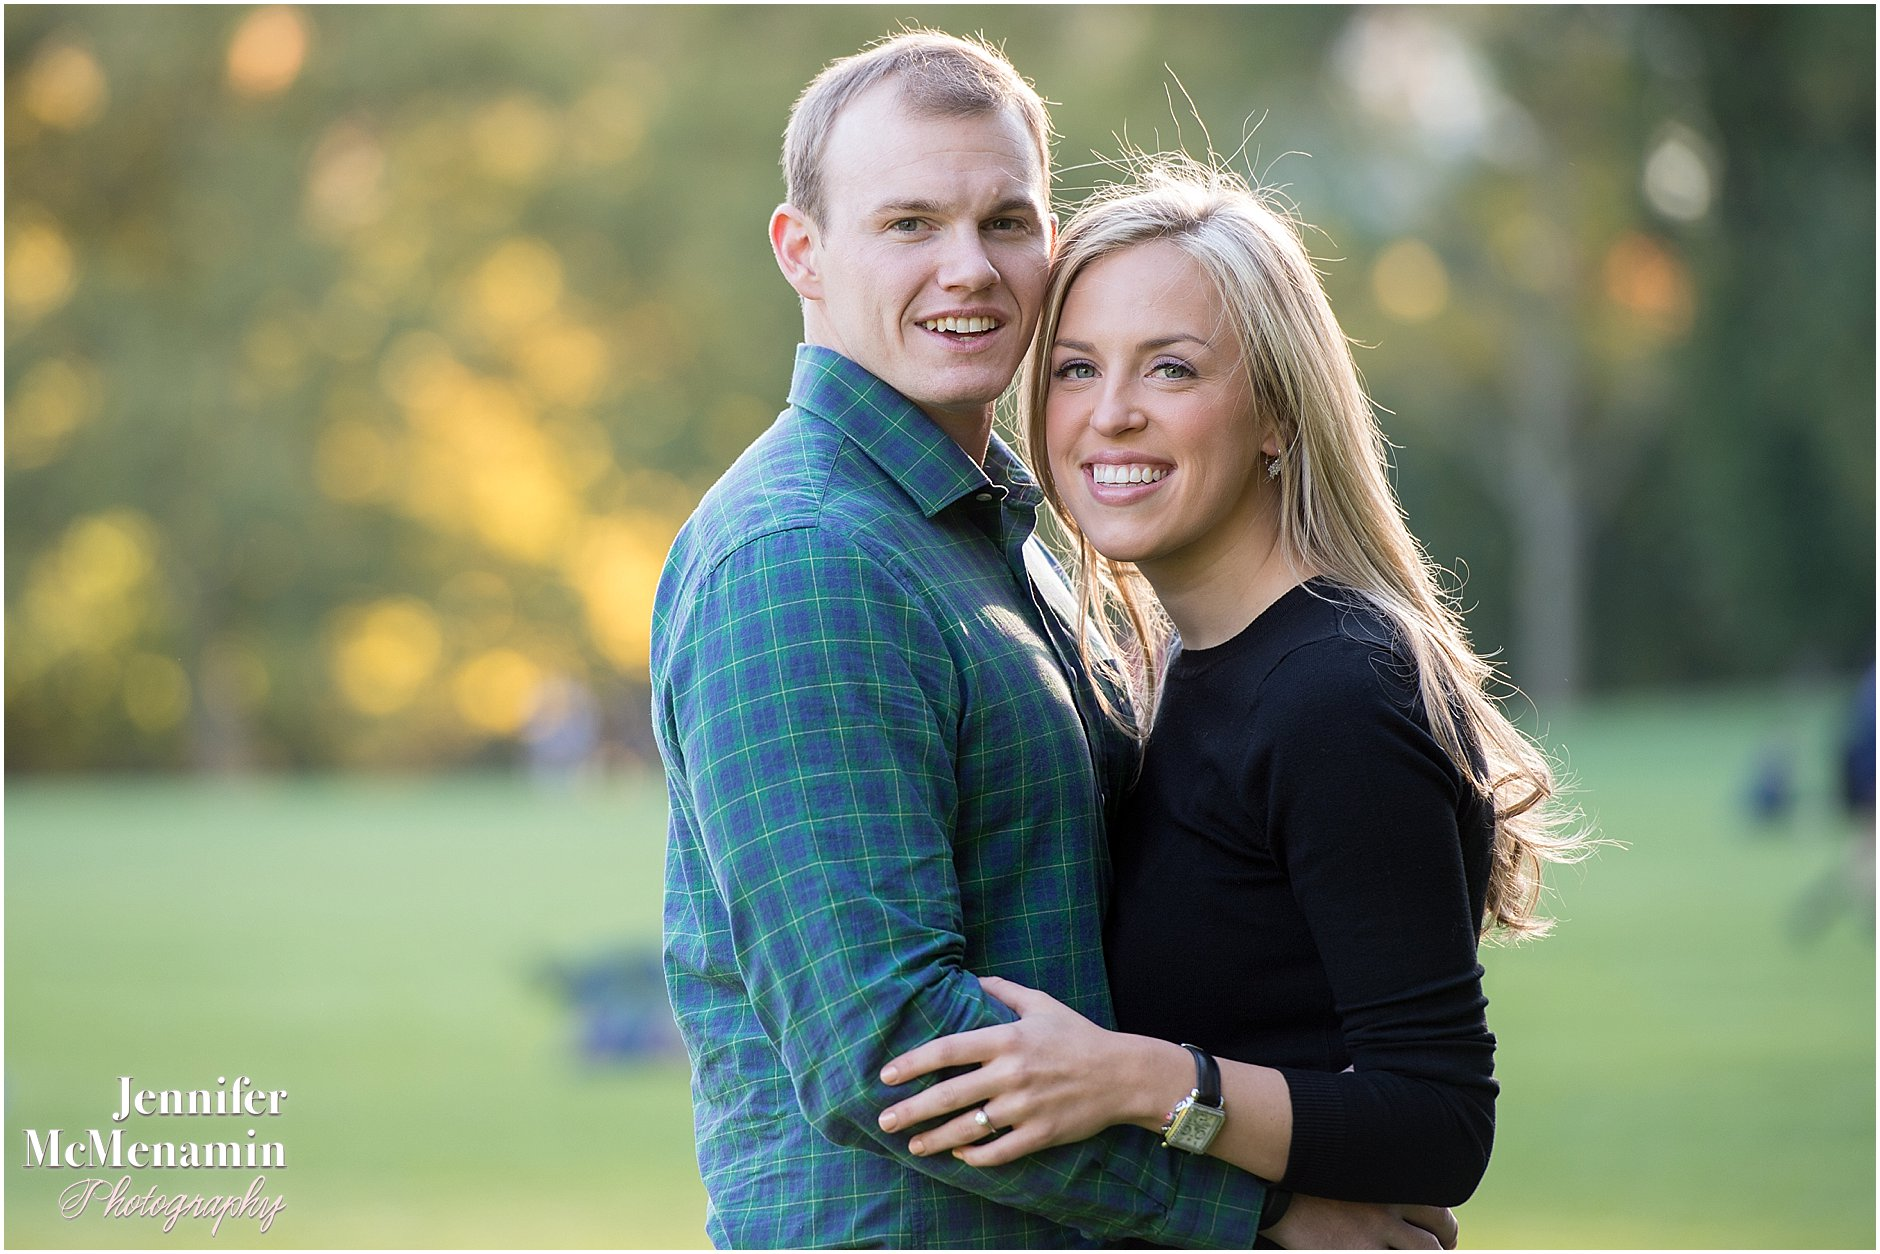 002-jennifer-mcmenamin-photography-nyc-engagement-photos_0002